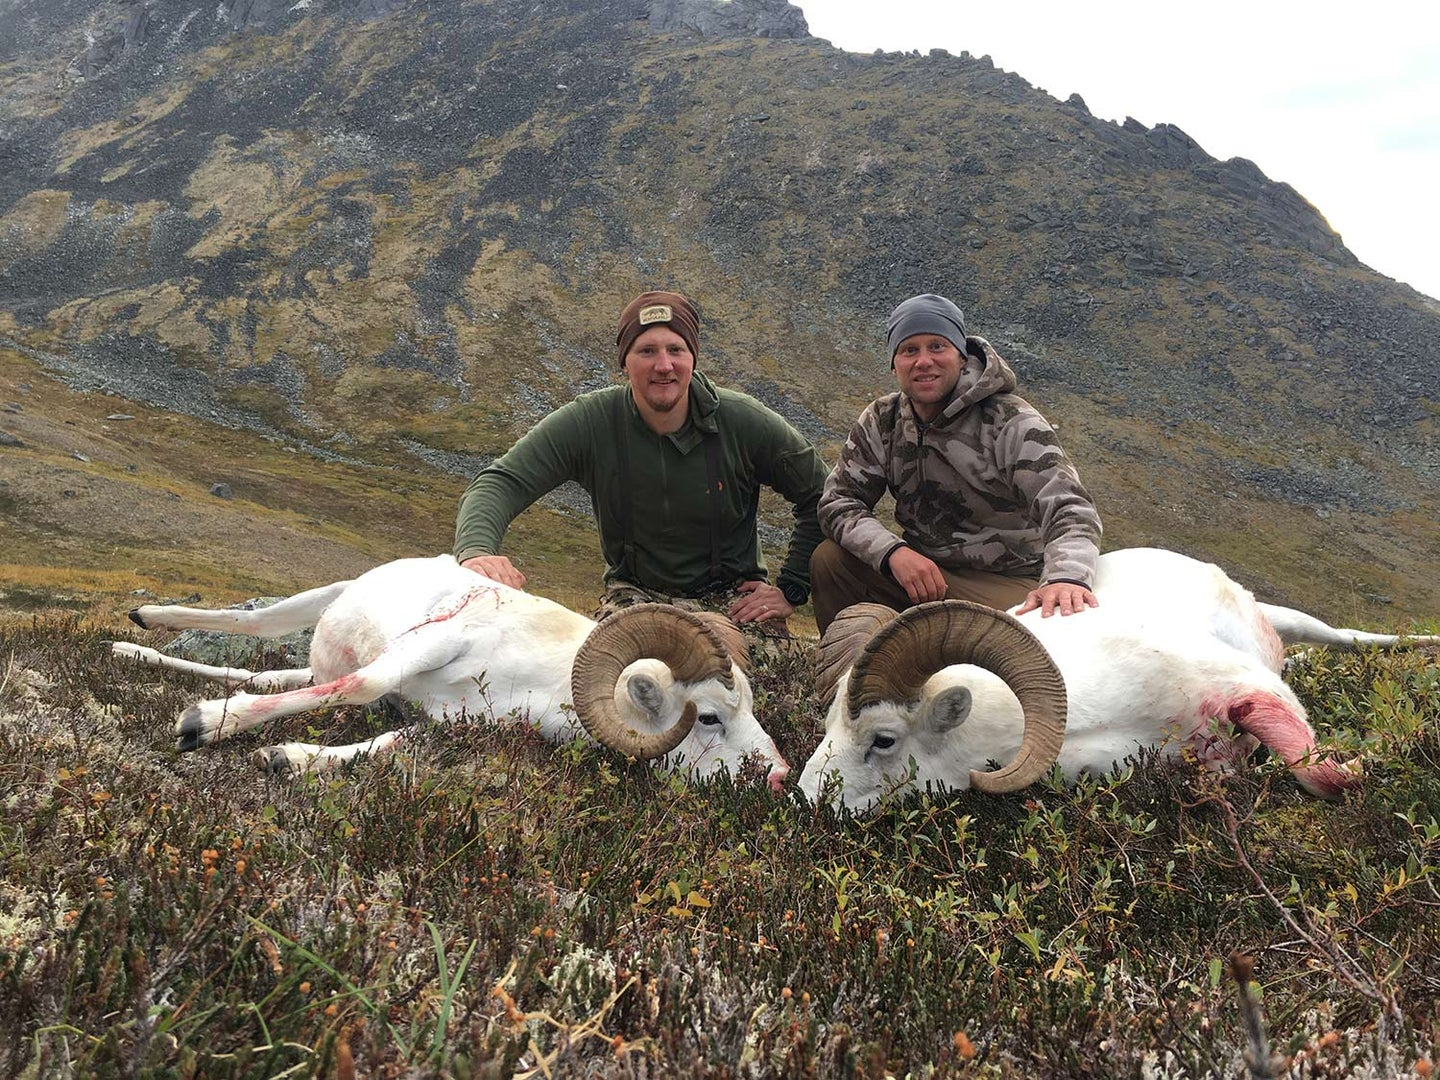 Two hunters kneeling behind two white dall sheep.